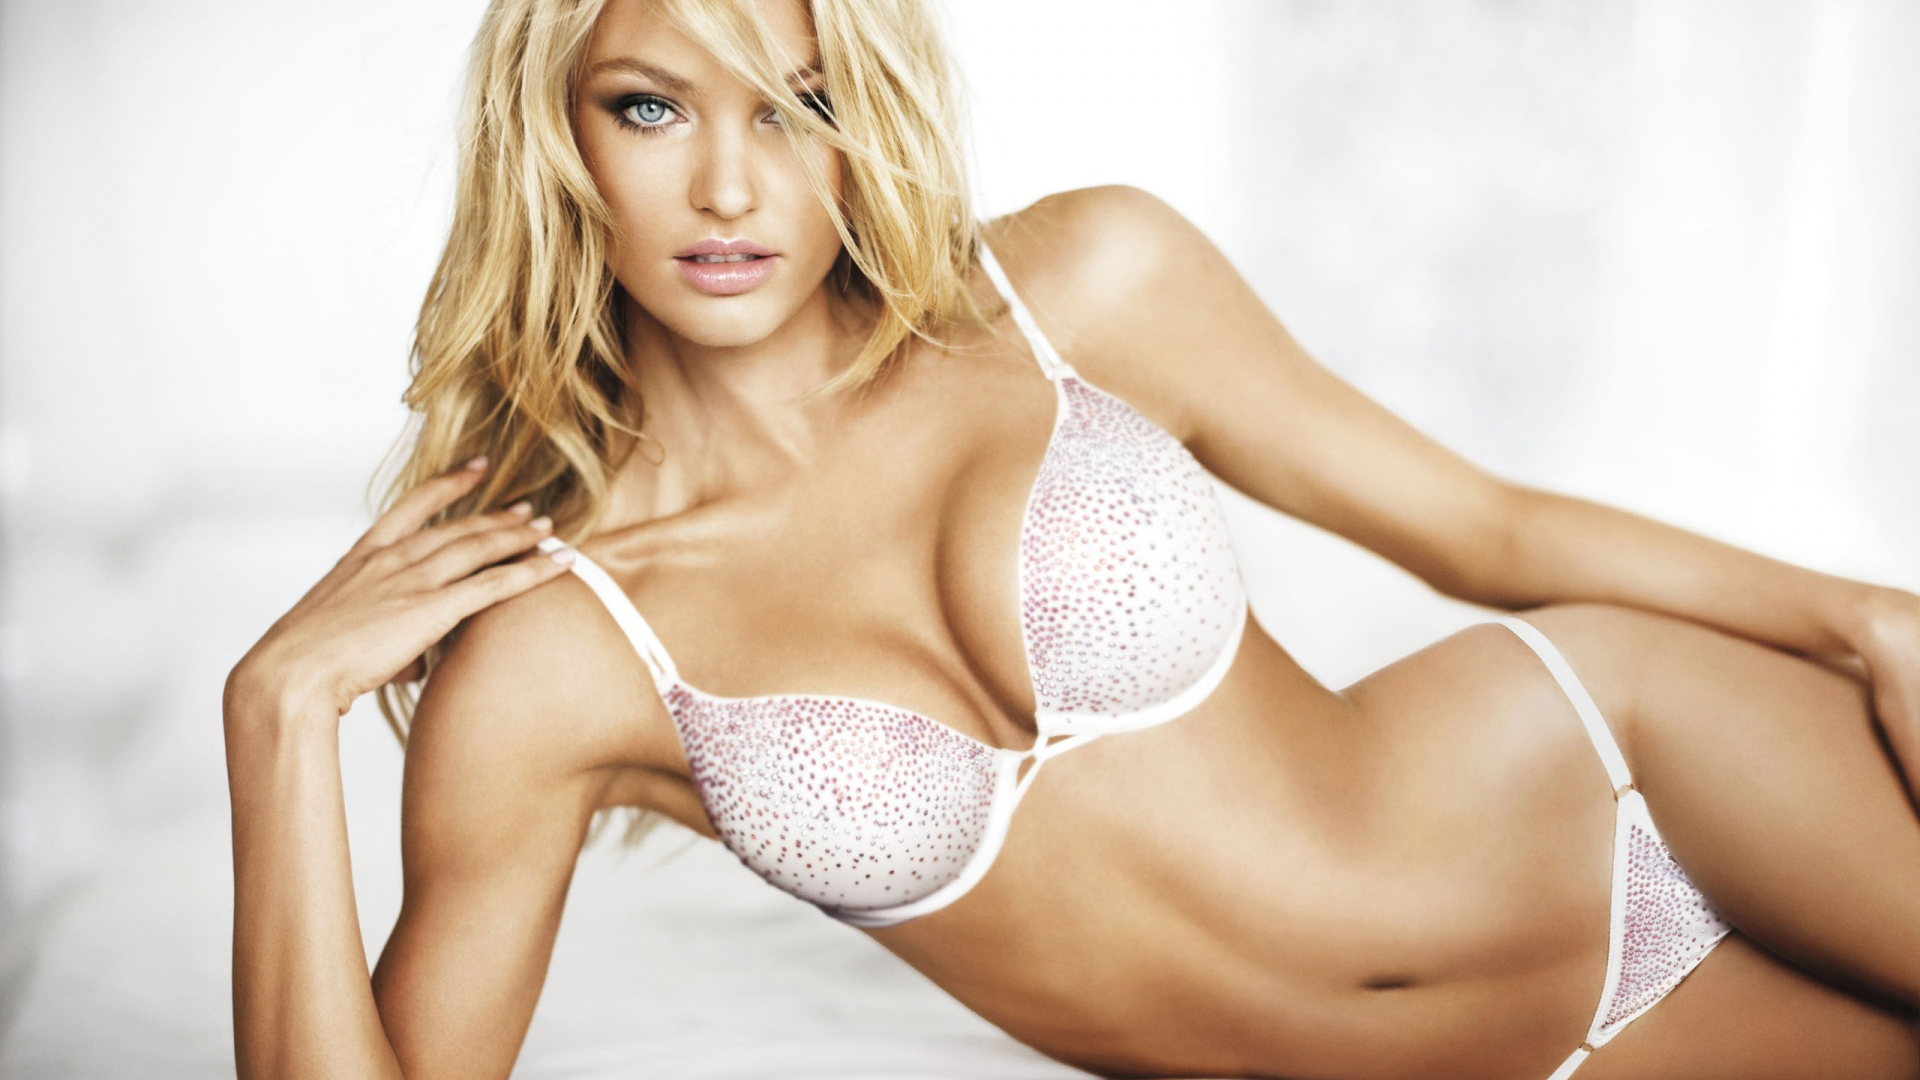 candice-swanepoel-4.png